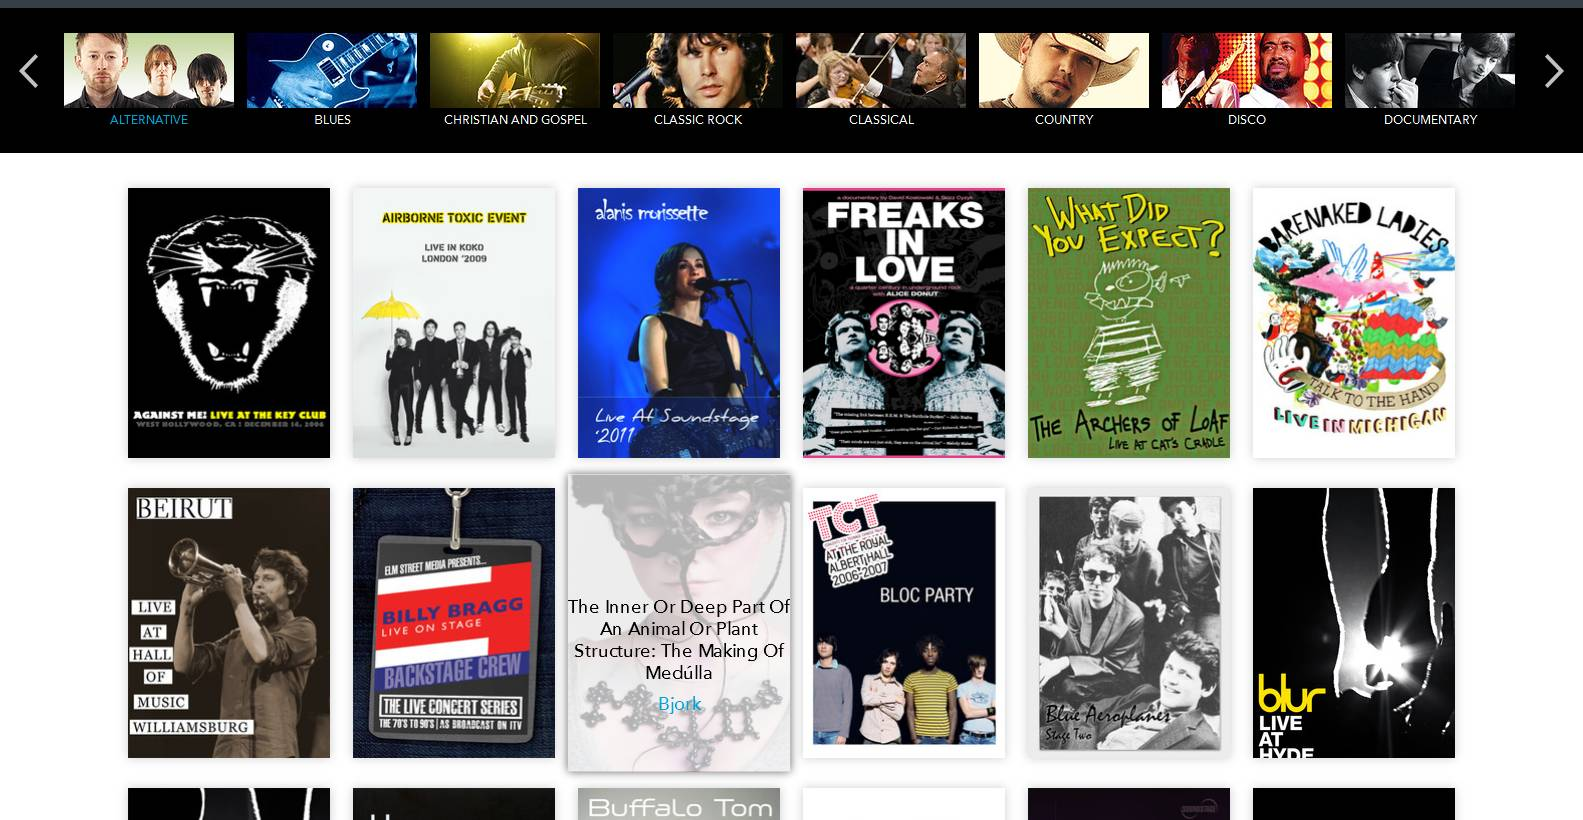 #1296 - 'QelloIBrowse Concerts By Genre_ Alternative' - qello_com_myq_browse_cat=genre&orderby=Alternative